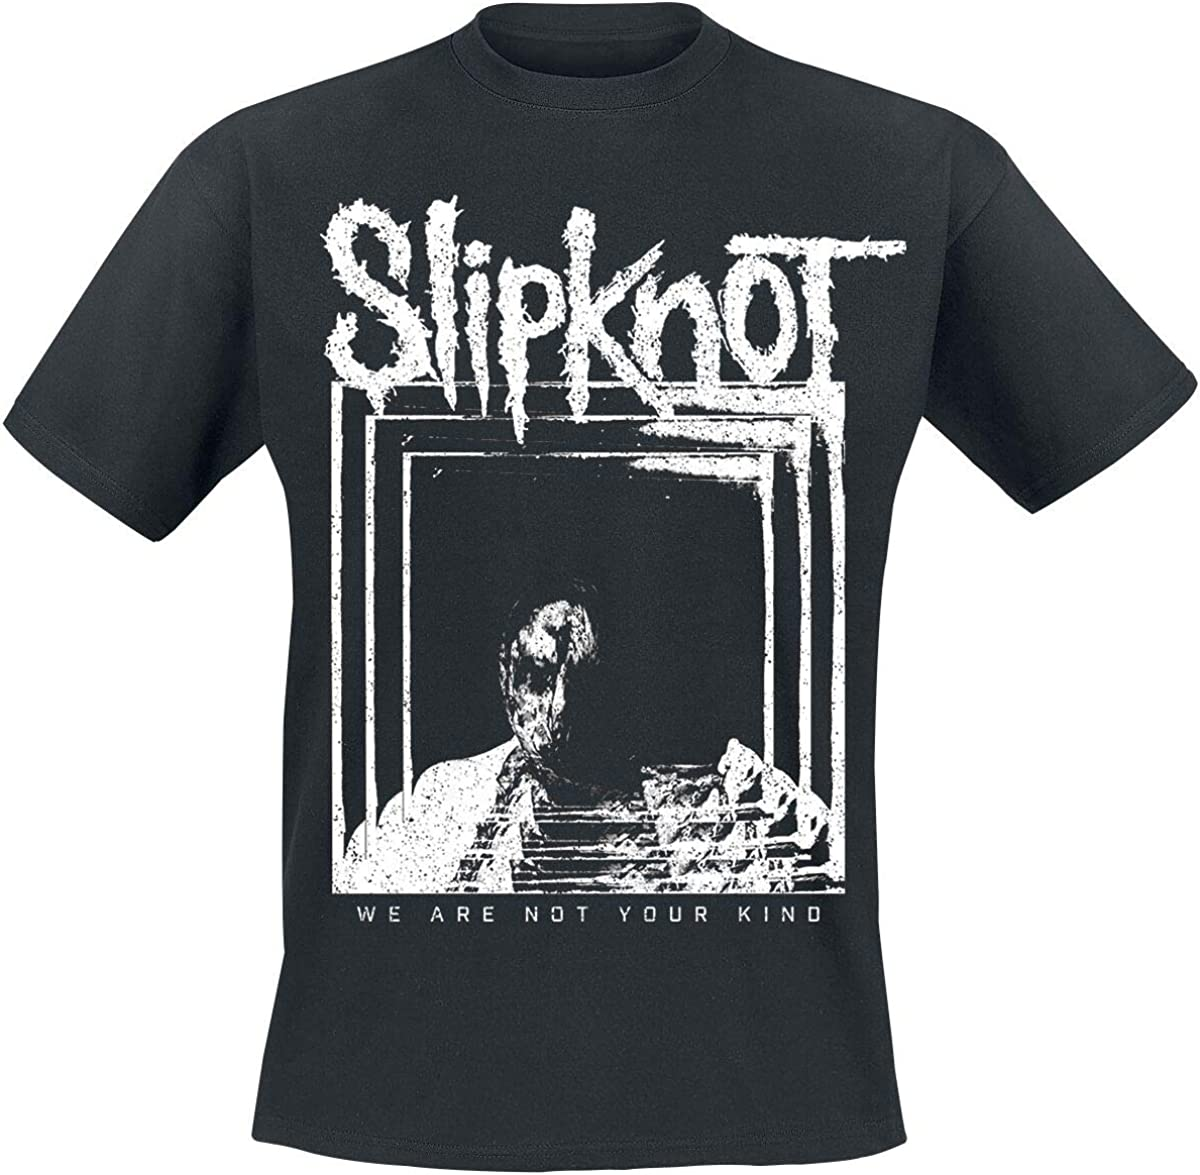 Bands Multi Frame M/änner T-Shirt schwarz Slipknot We Are Not Your Kind Band-Merch